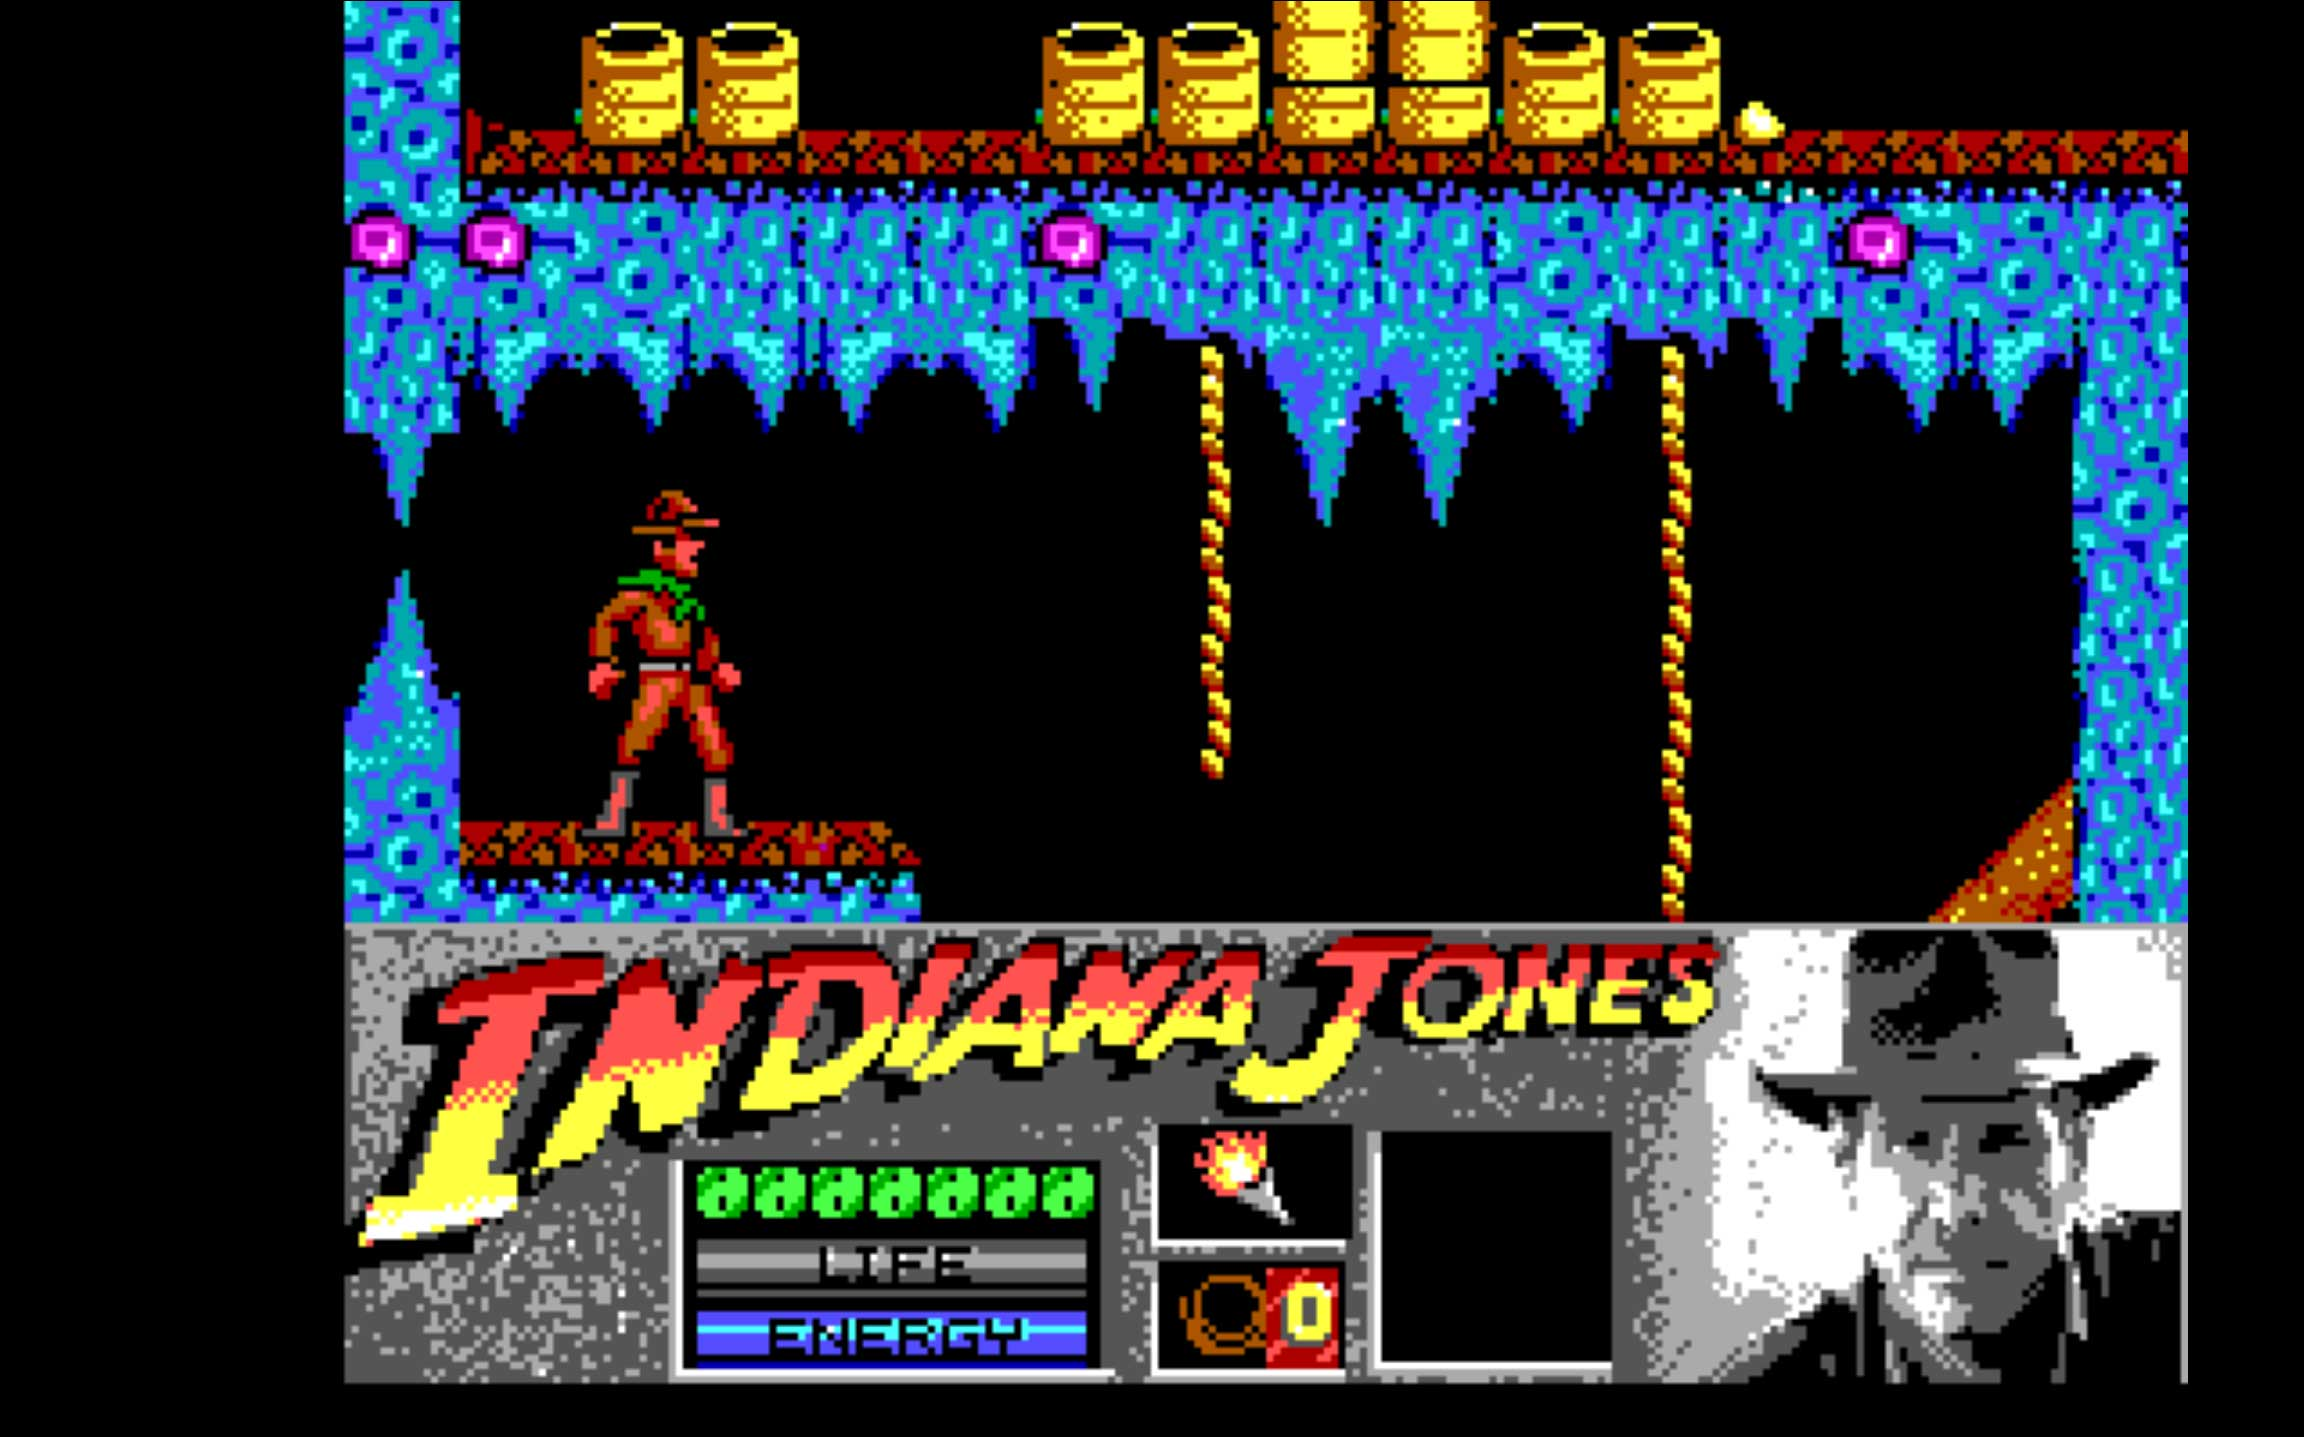 "<a href=""https://archive.org/details/msdos_Indiana_Jones_and_the_Last_Crusade_-_The_Action_Game_1989"" target=""_blank""><strong>Indiana Jones and the Last Crusade - The Action Game (1989)</strong></a>                                                                      This 1989 title was a Holy Grail for gamers, because it gave them control of Indiana Jones, one of the 80's coolest characters."